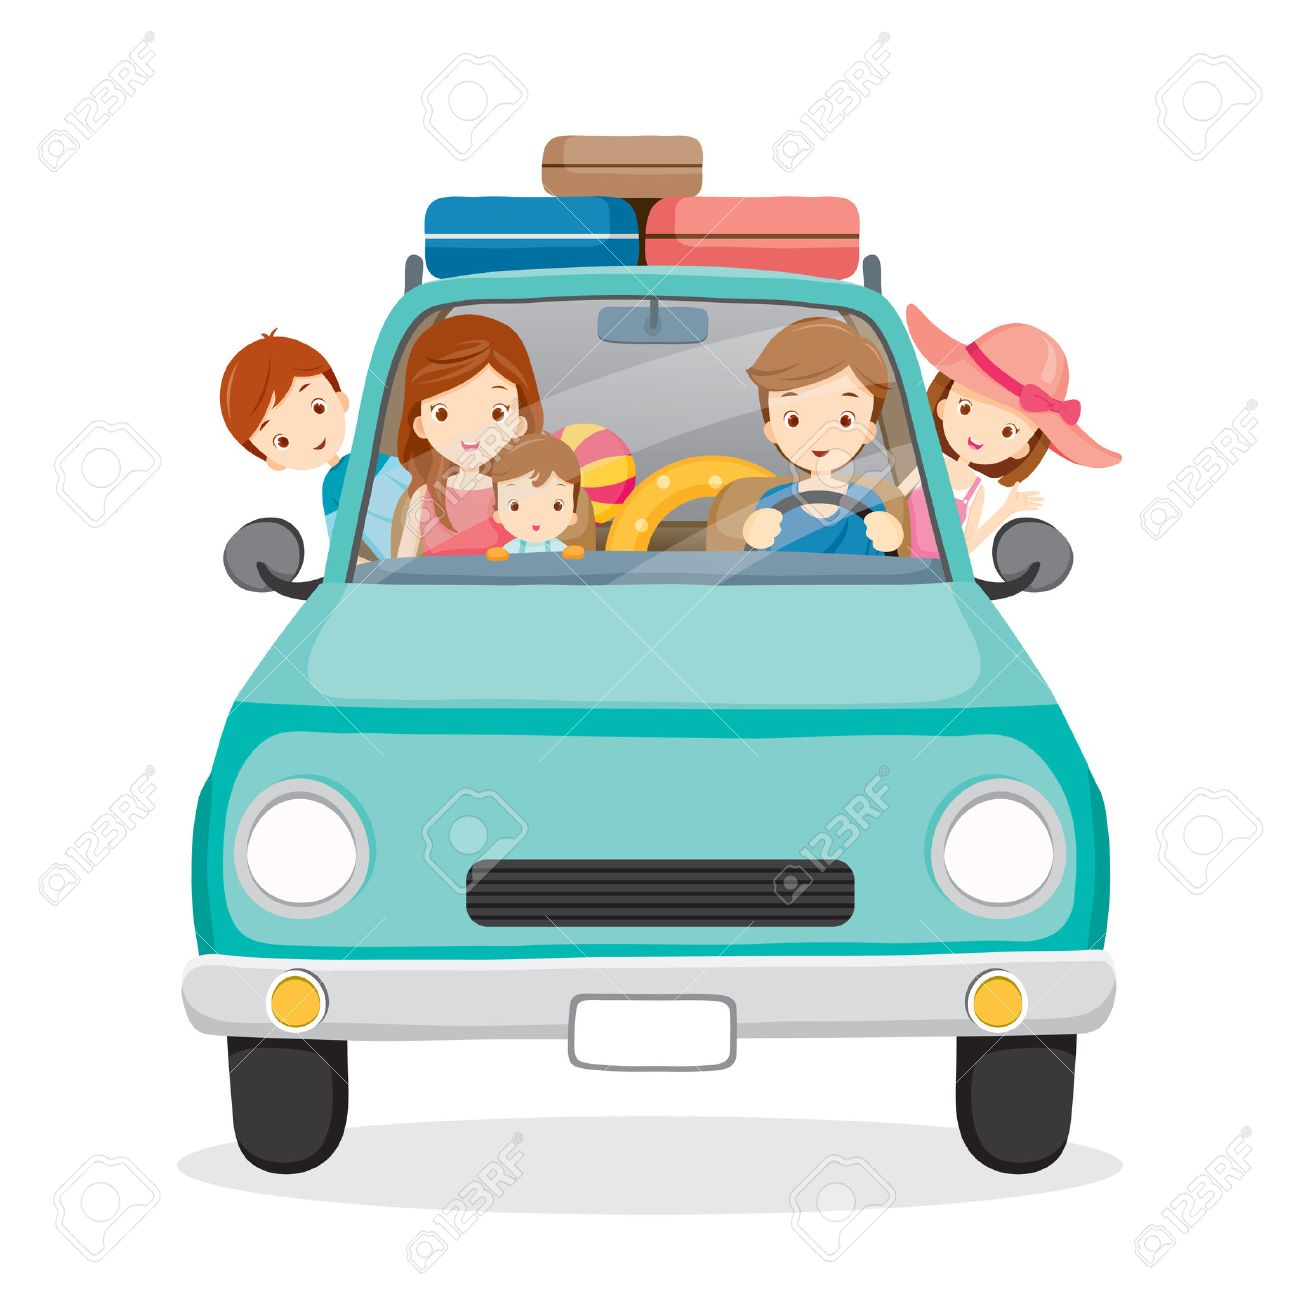 Family on Car Driving to Travel, Vacations, Holiday, Travel Destination, Journey Trips, Transportation - 54343465